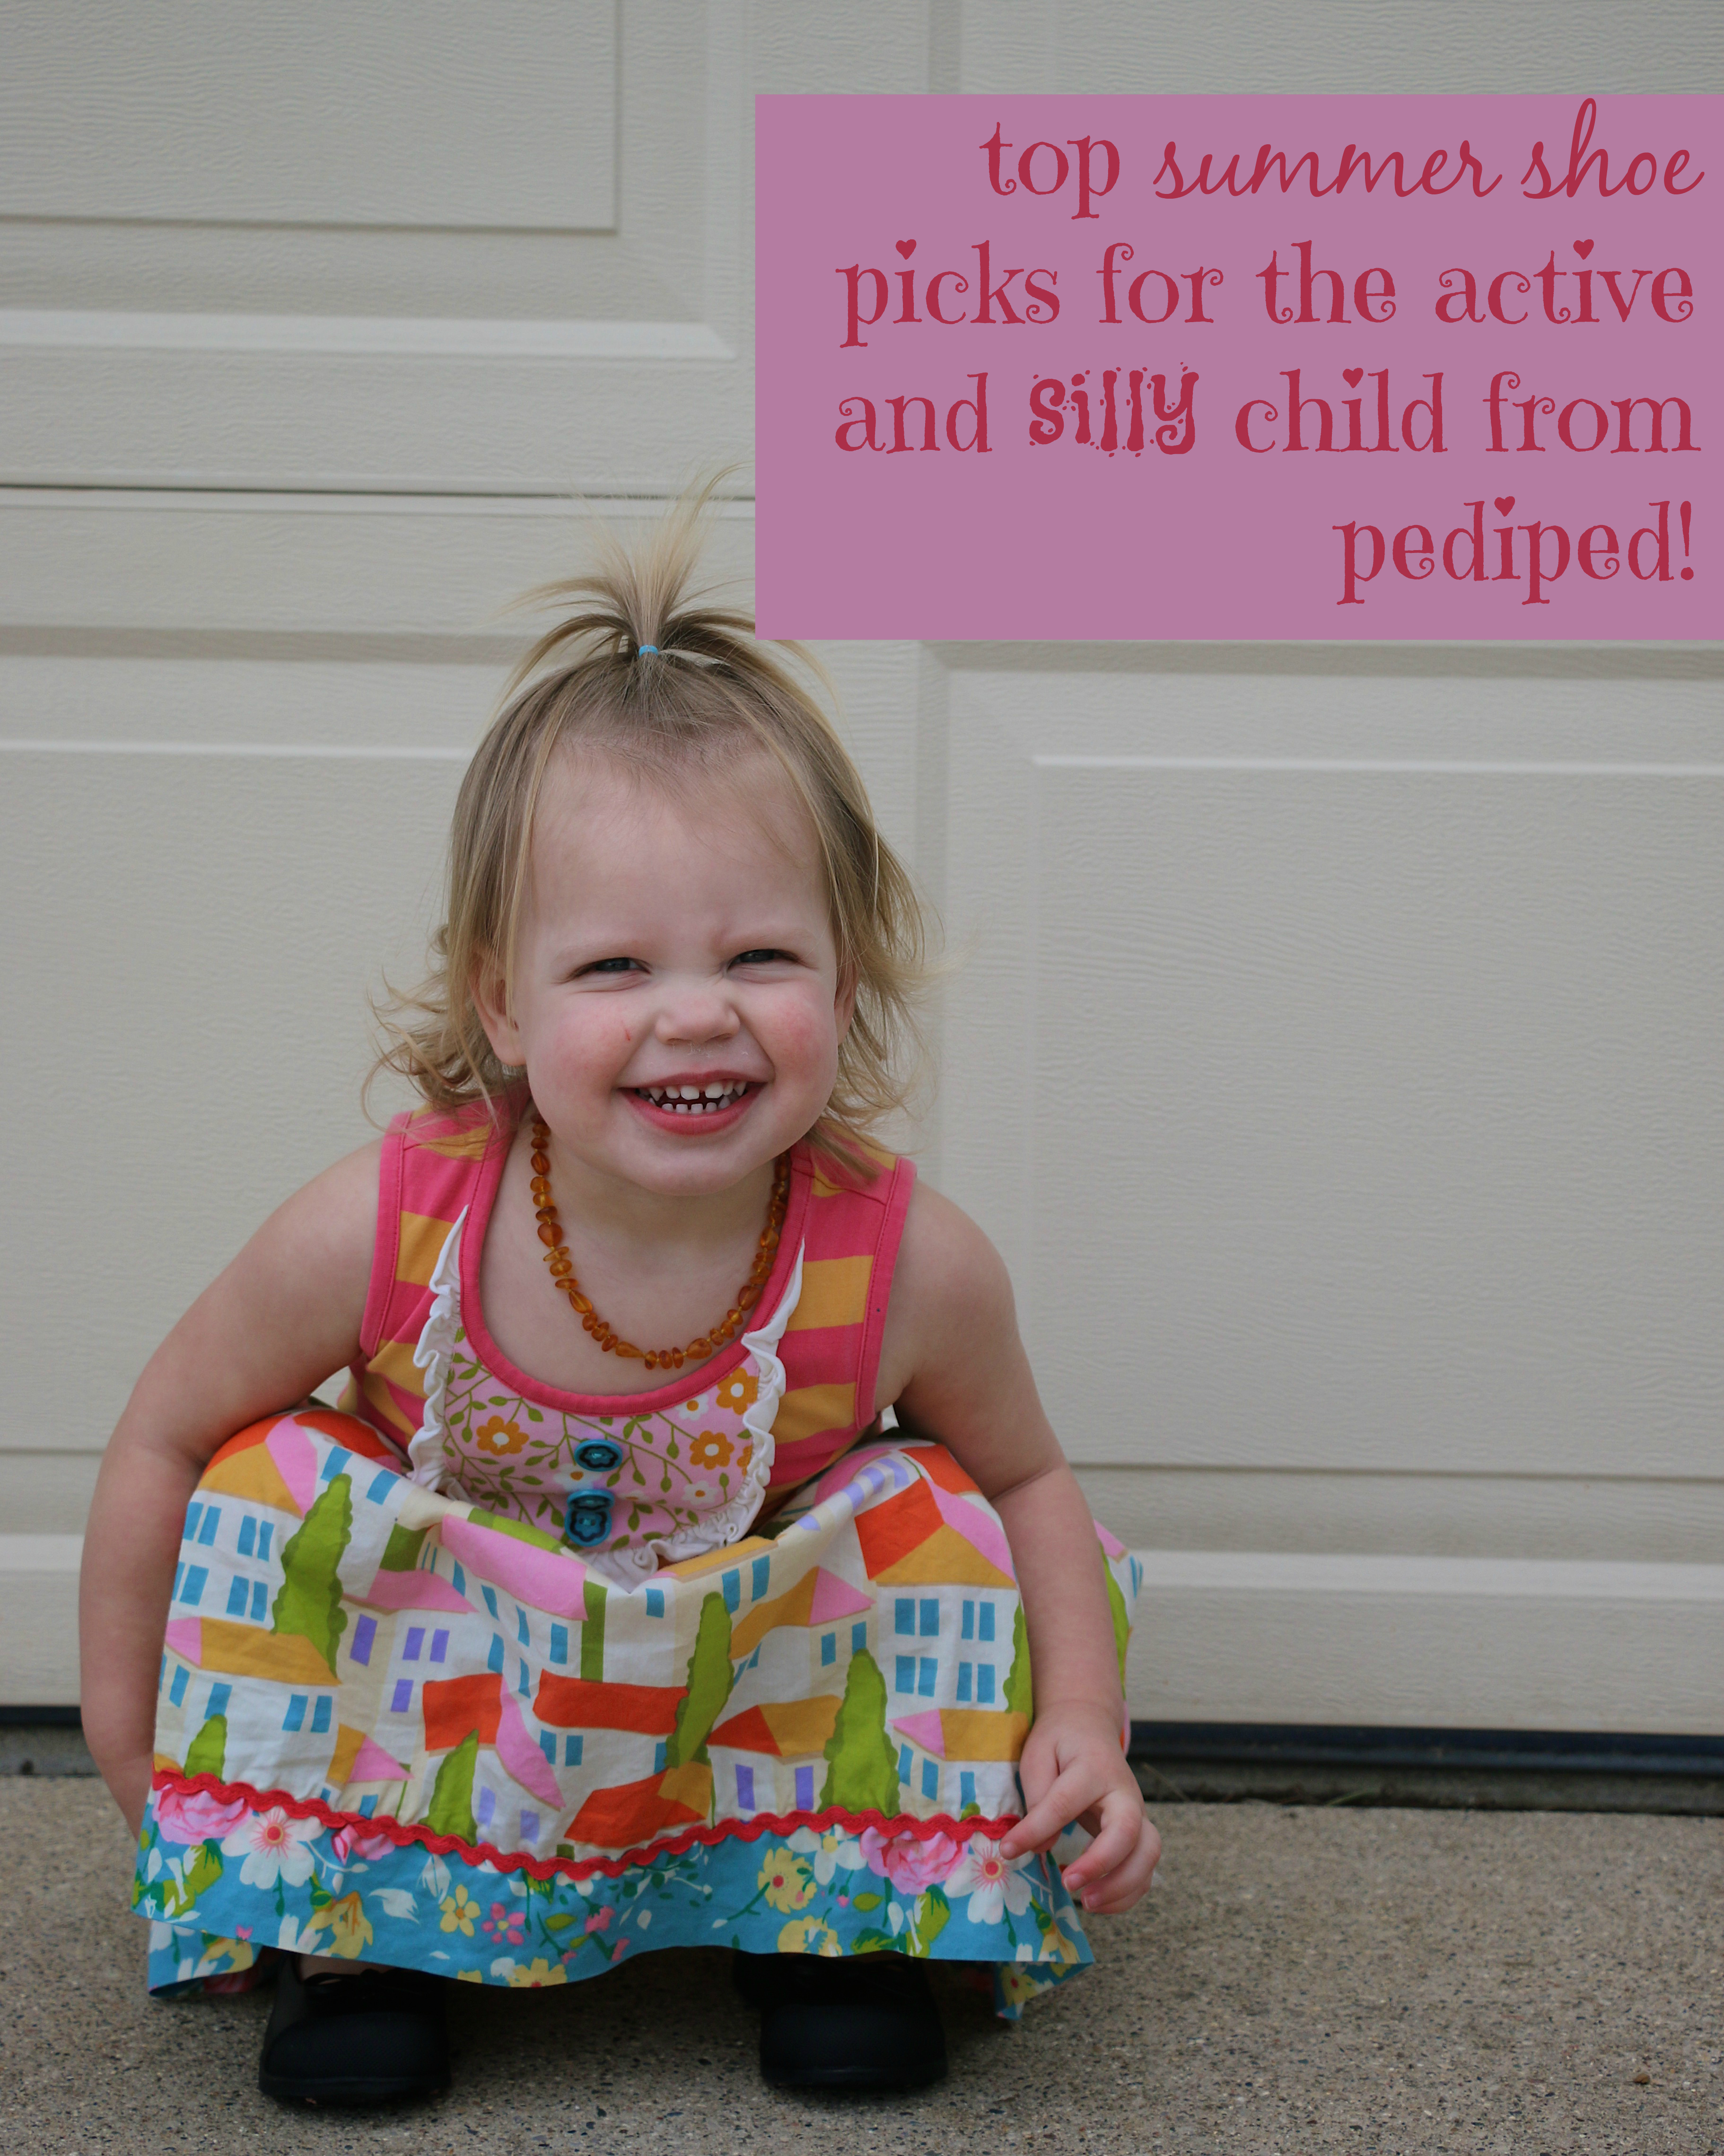 top summer shoe picks for the active and silly child from pediped